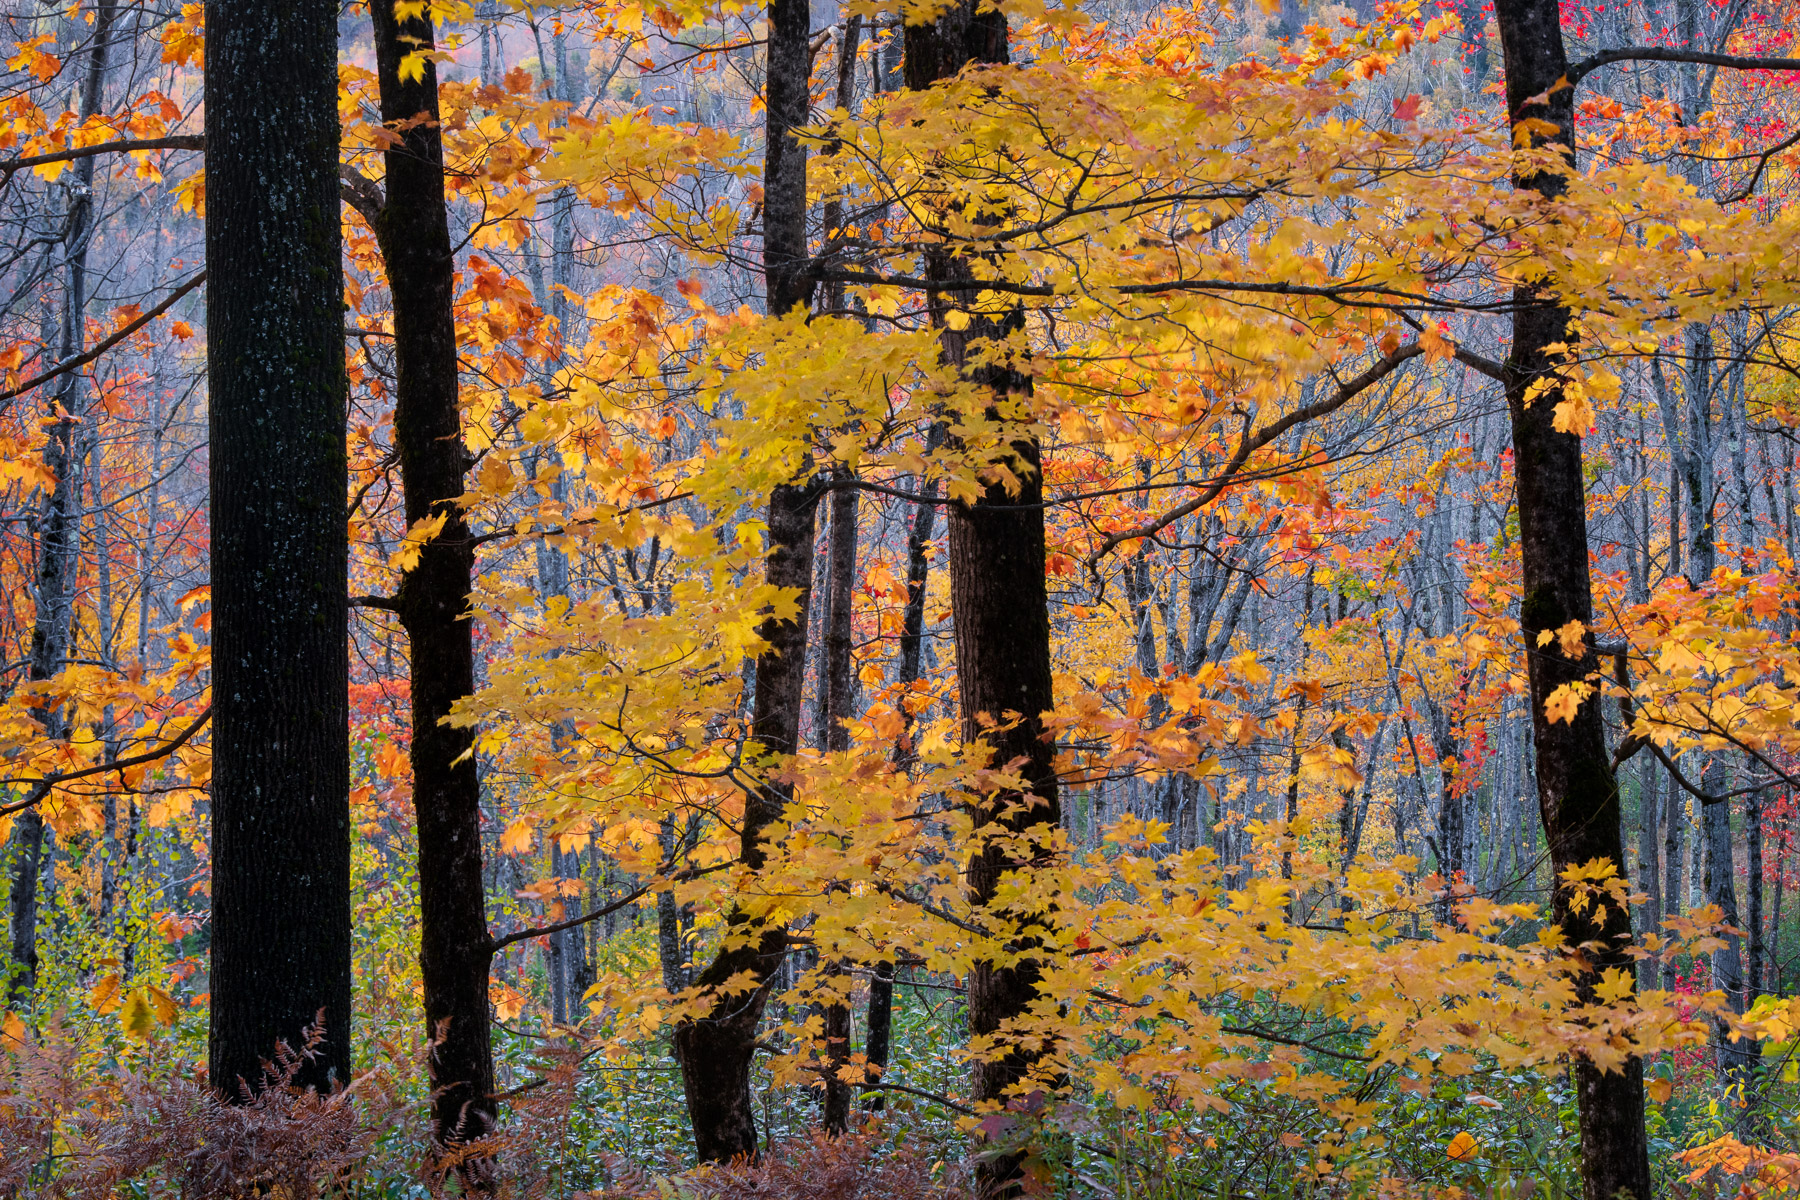 Autumn color captured in Central Maine's Lake Region.